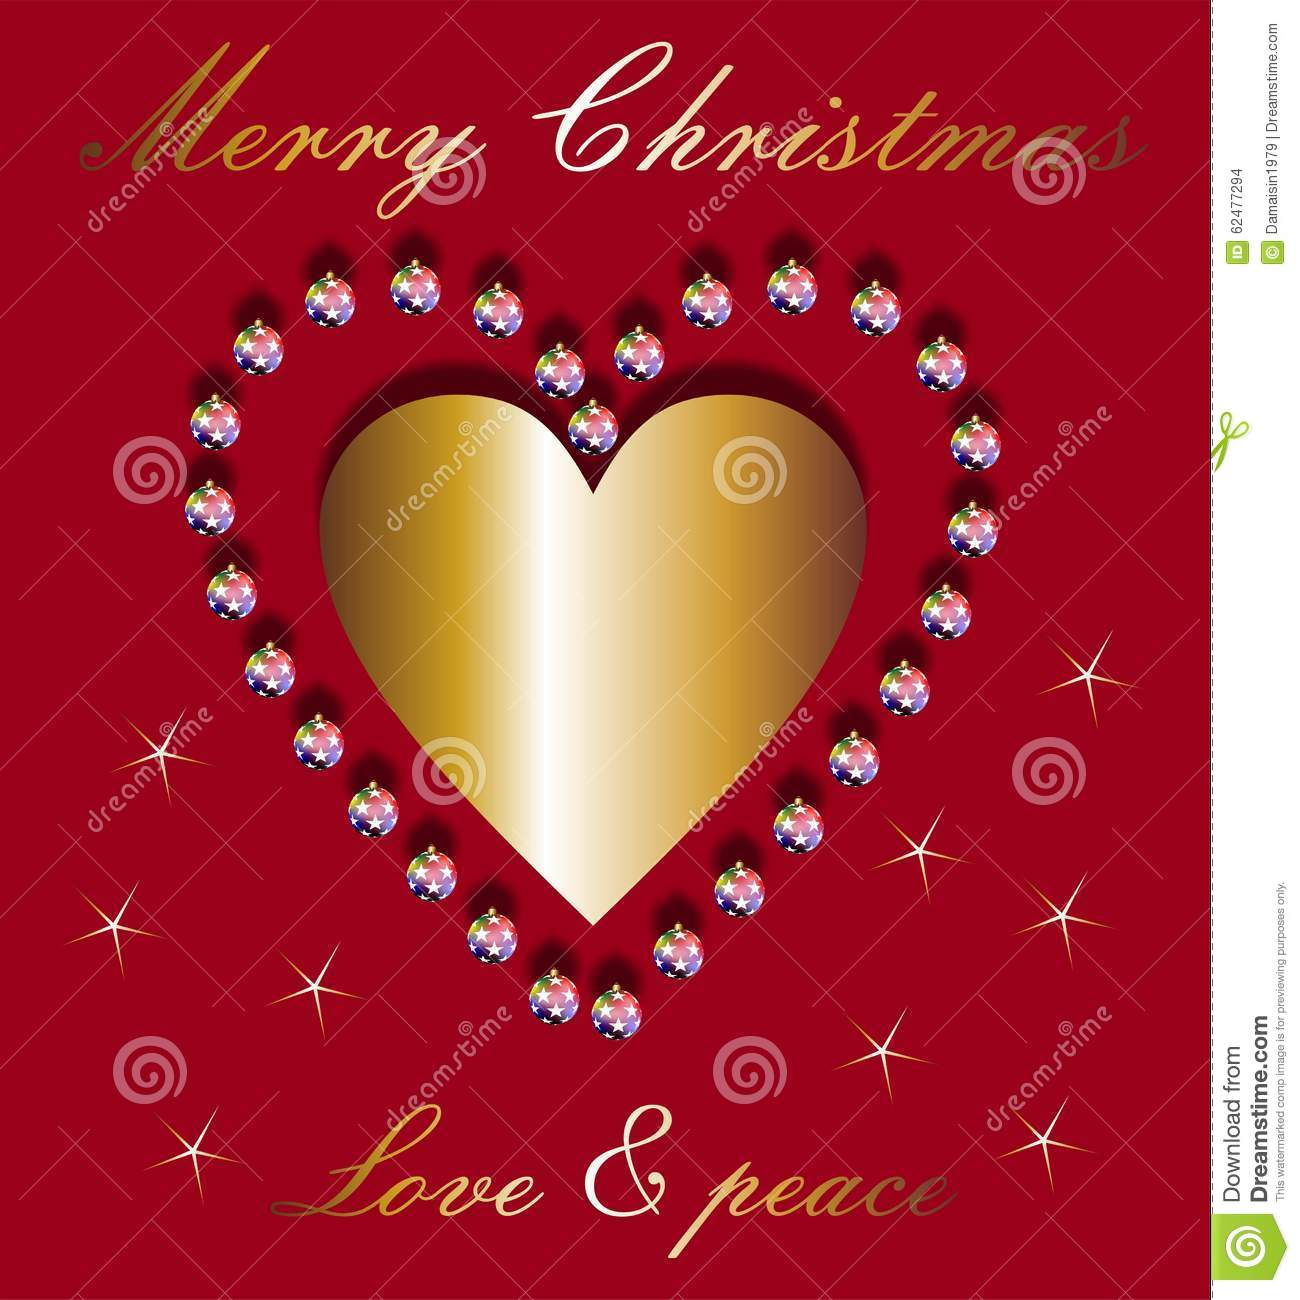 Christmas wishes and golden heart stock photo image of